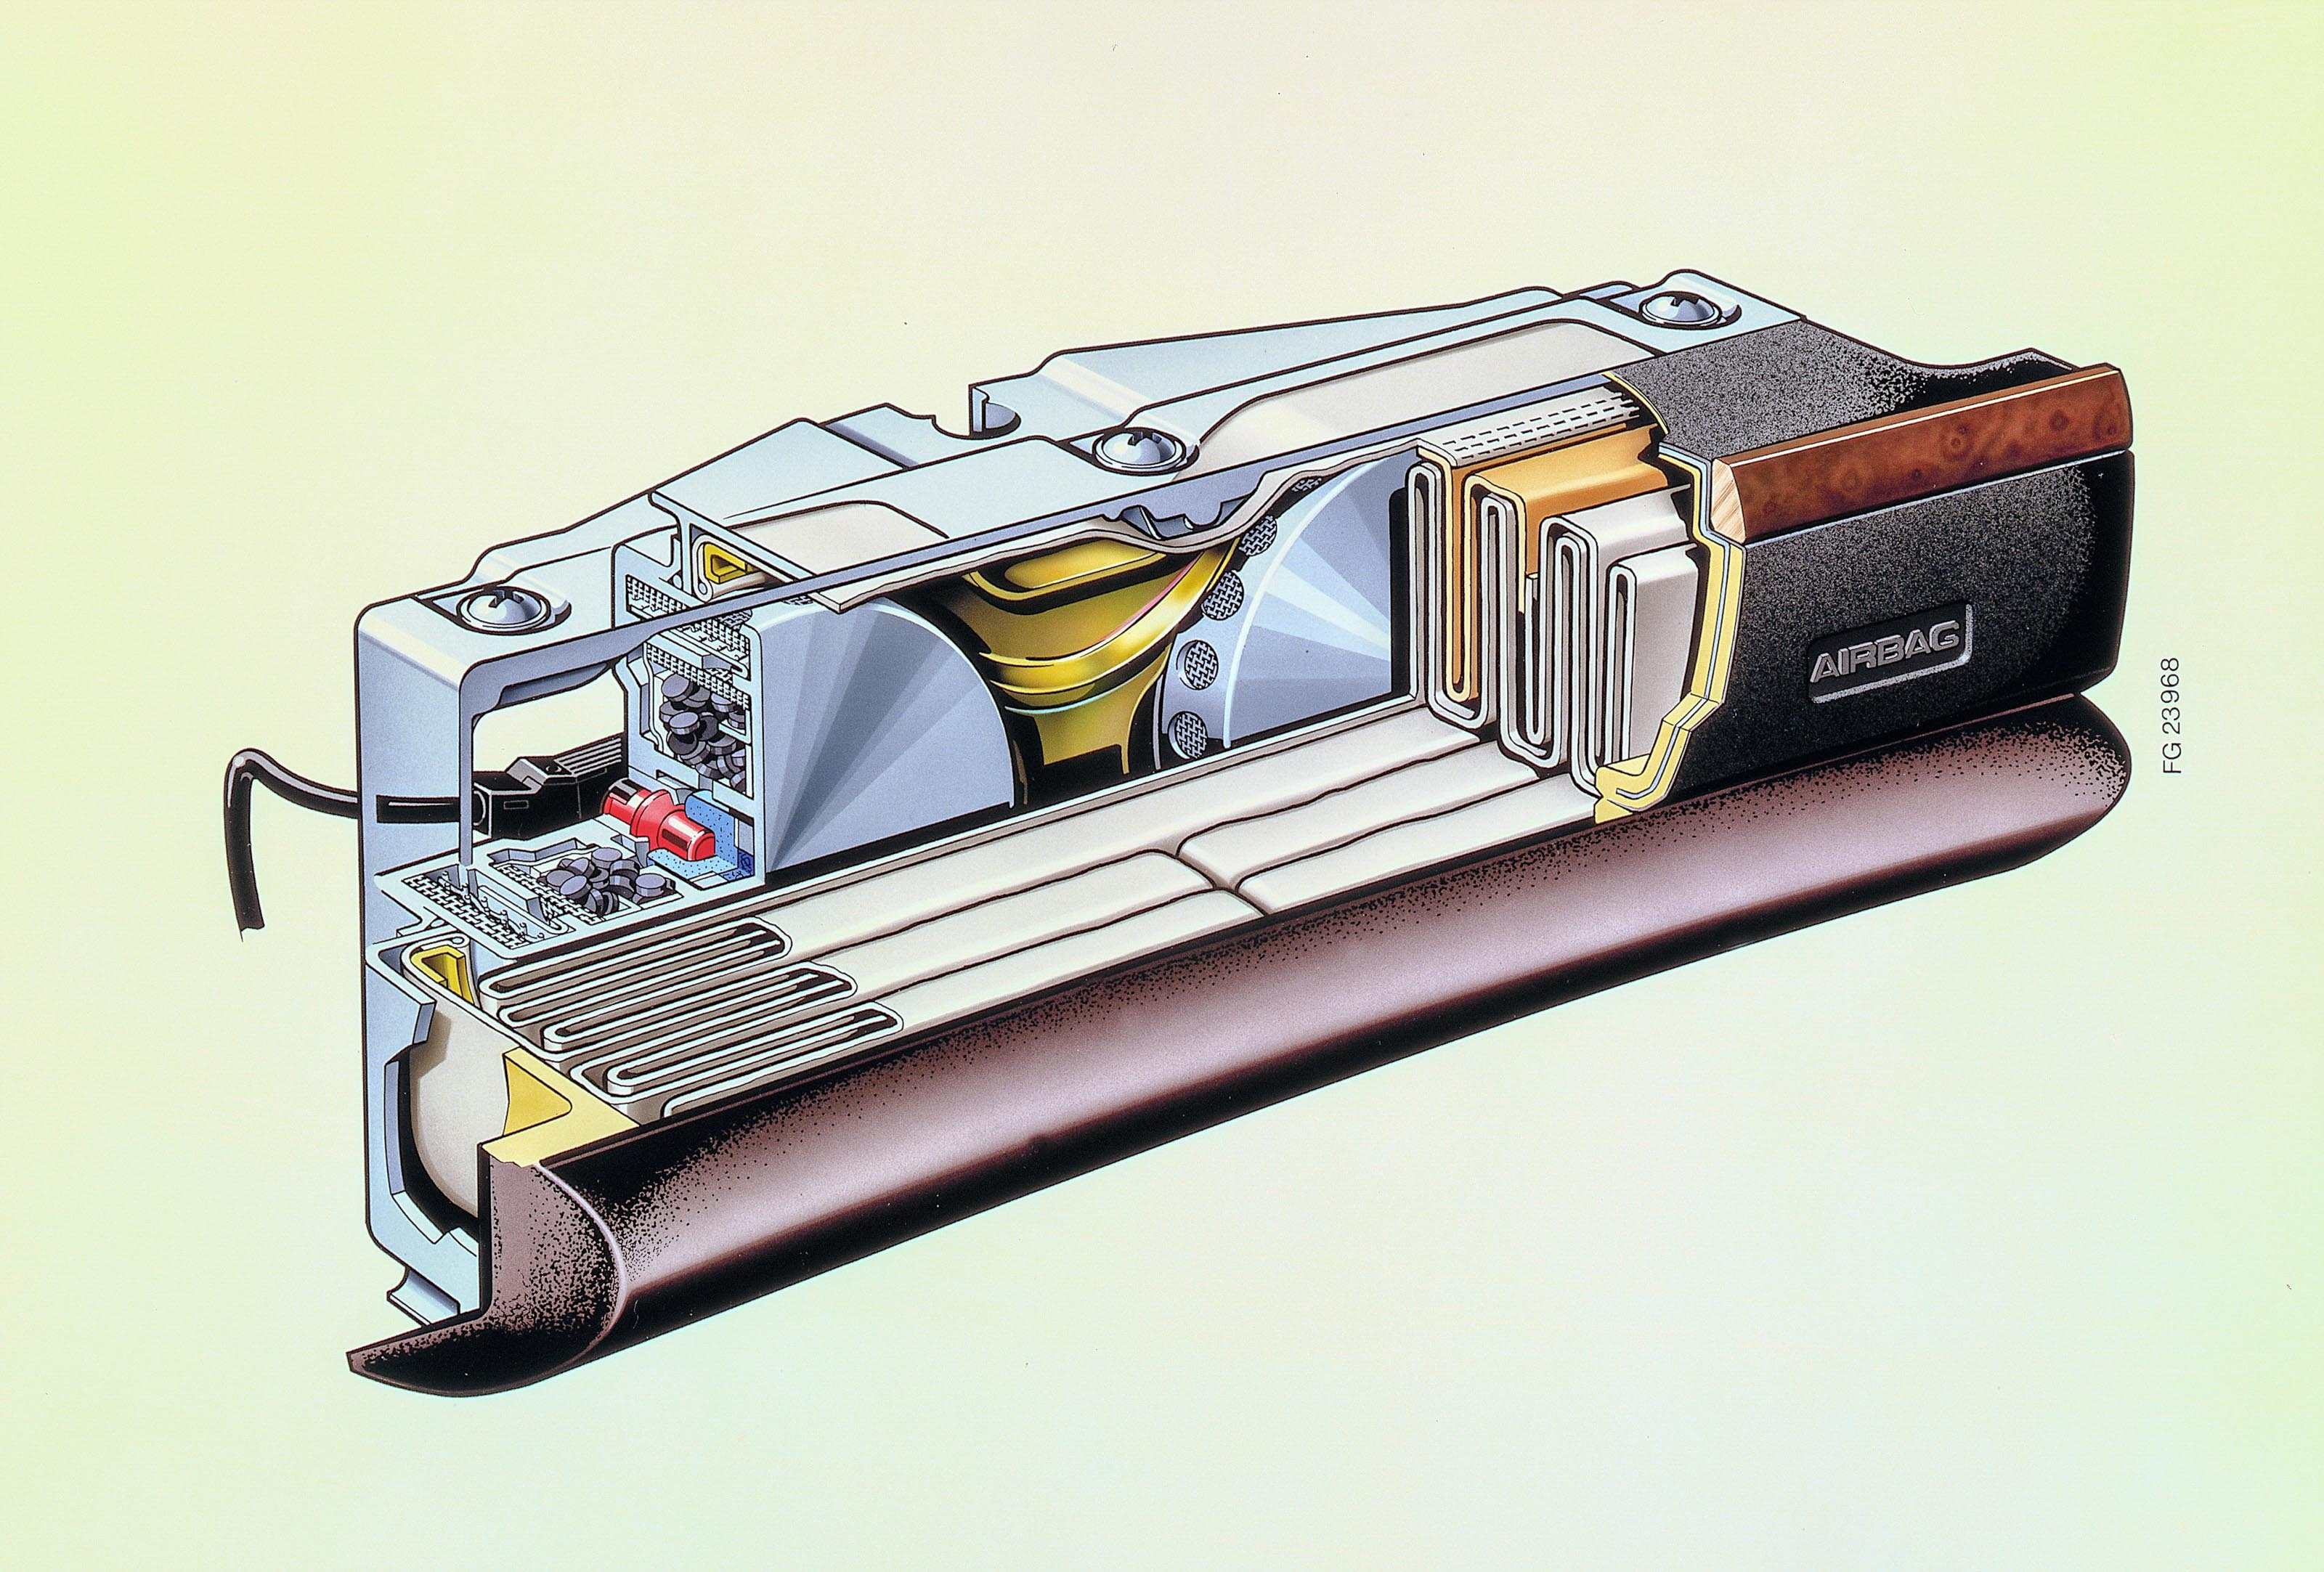 Sectional drawing of the 1981 Mercedes-Benz S-Class W126 front passenger airbag module that shows the folded airbag and dual gas generators filled with pelletized solid propellant.